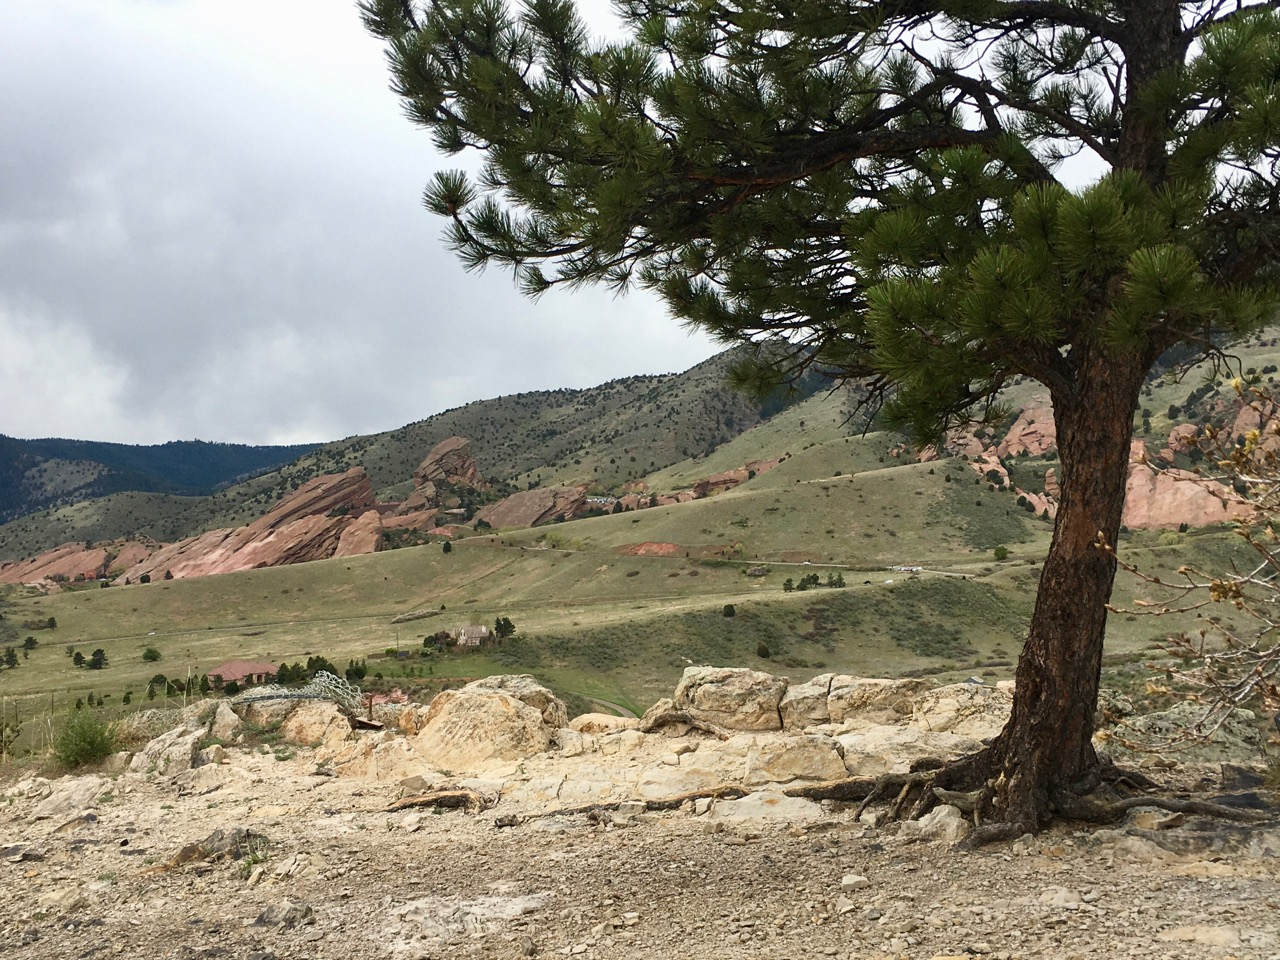 View of Red Rocks Amphitheatre from the Dakota Ridge Trail near Morrison, Colorado